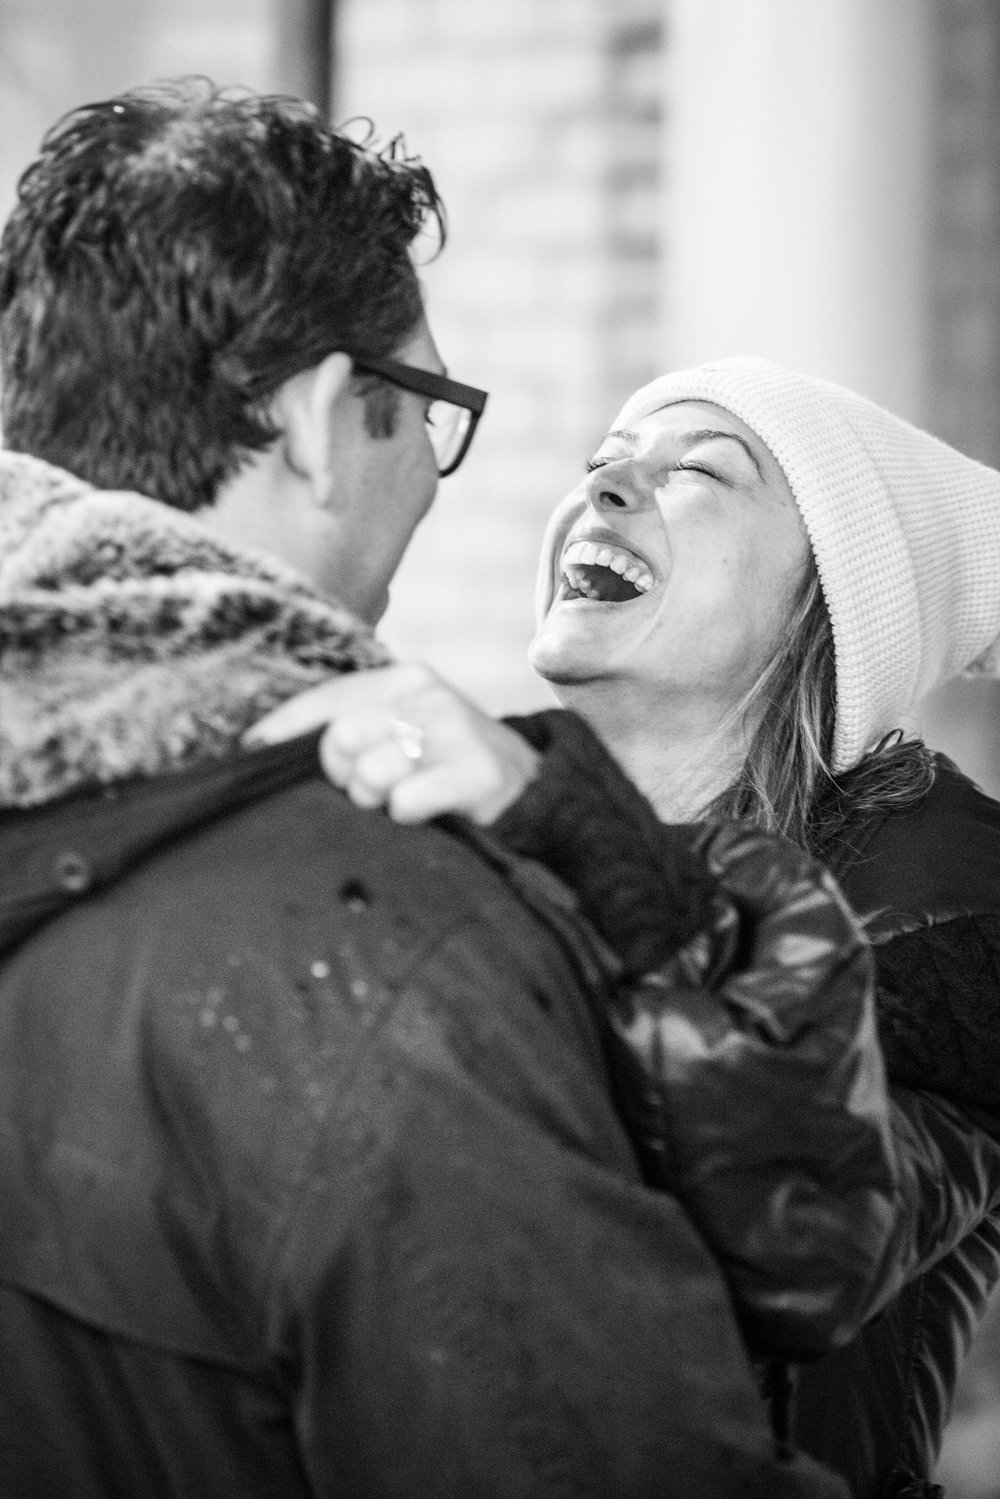 Laughing - Engagement Portraits - Photo credit Nicola Bailey.jpg